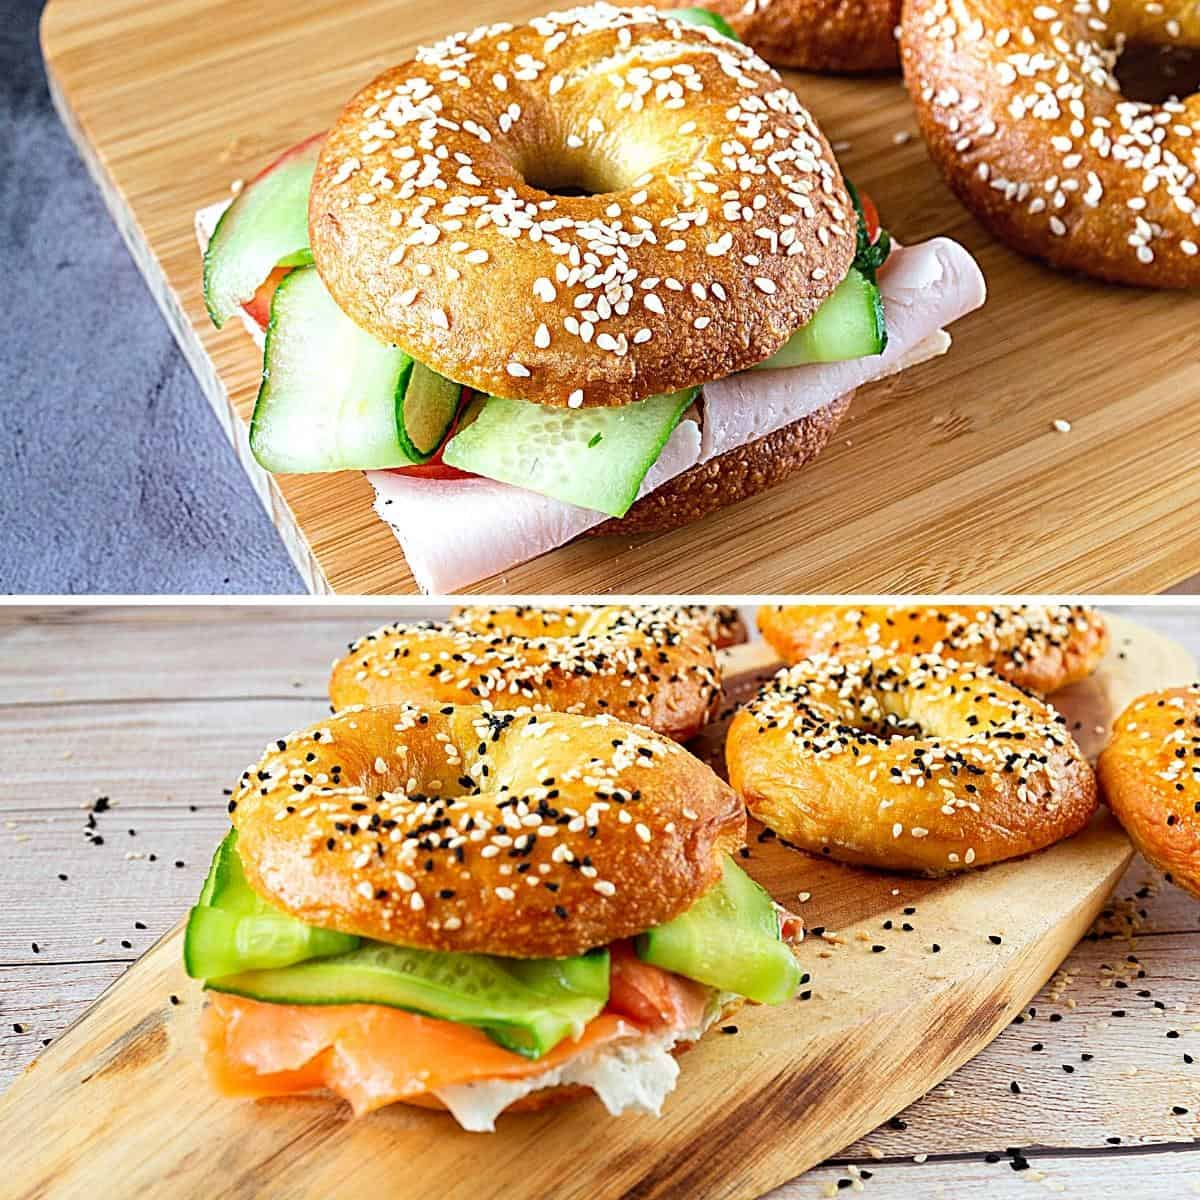 Bagel sandwiches made with lox or pastrami,